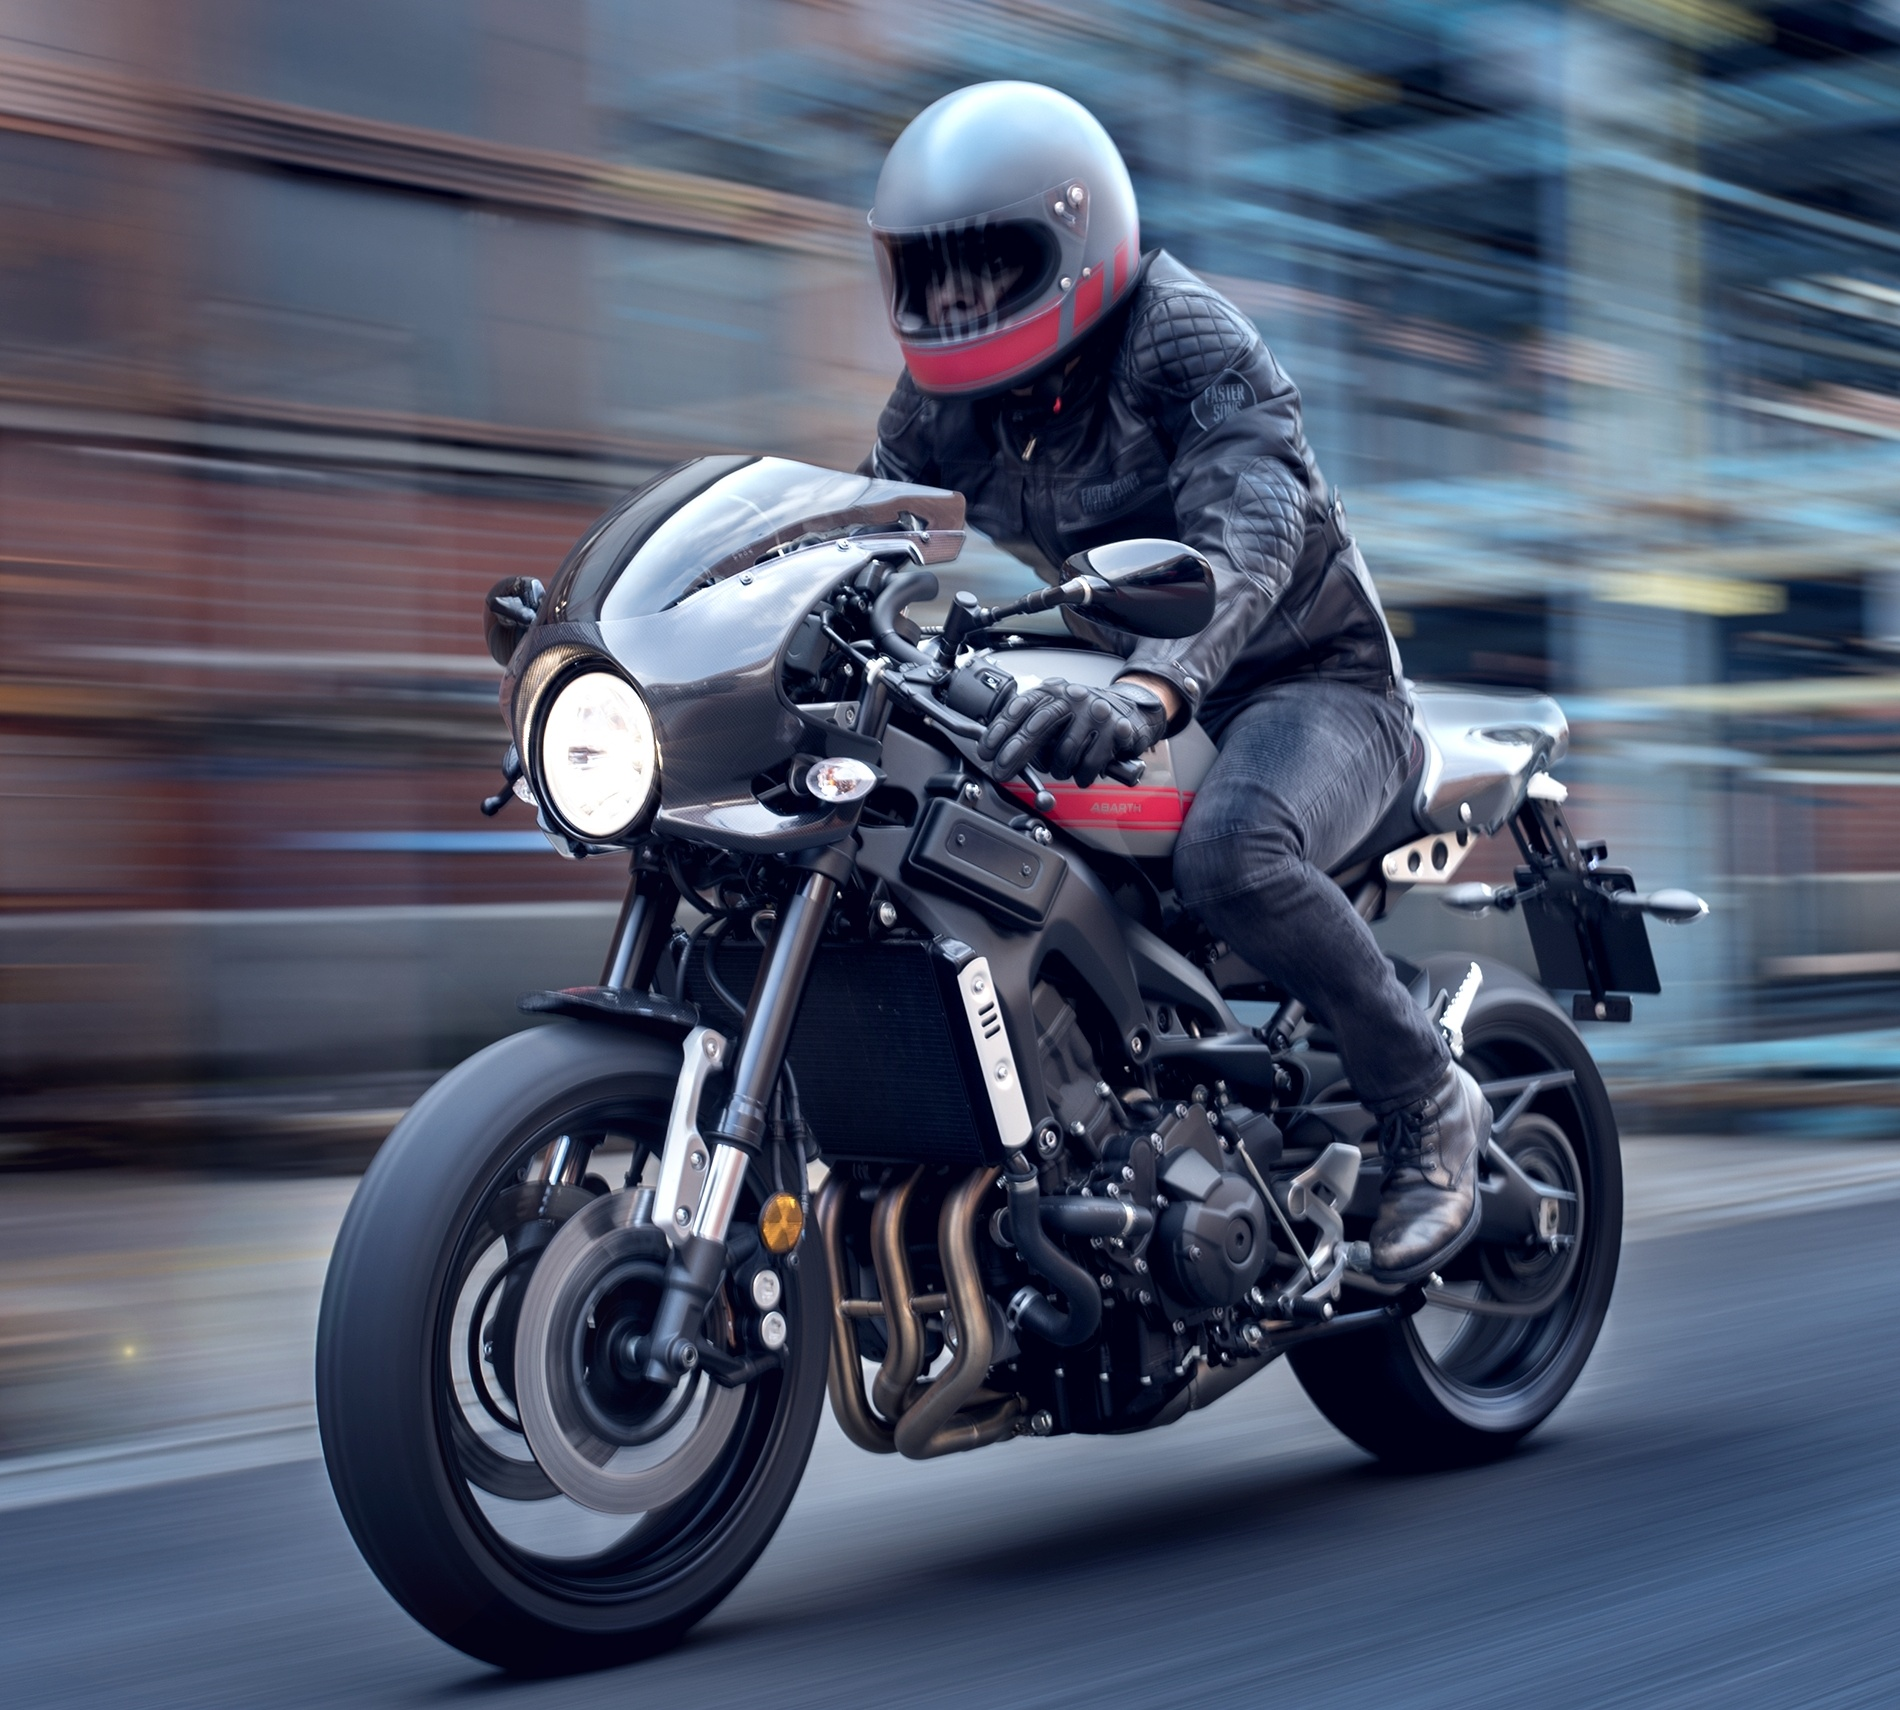 2017 Yamaha Xsr900 Abarth Released Only 695 Units